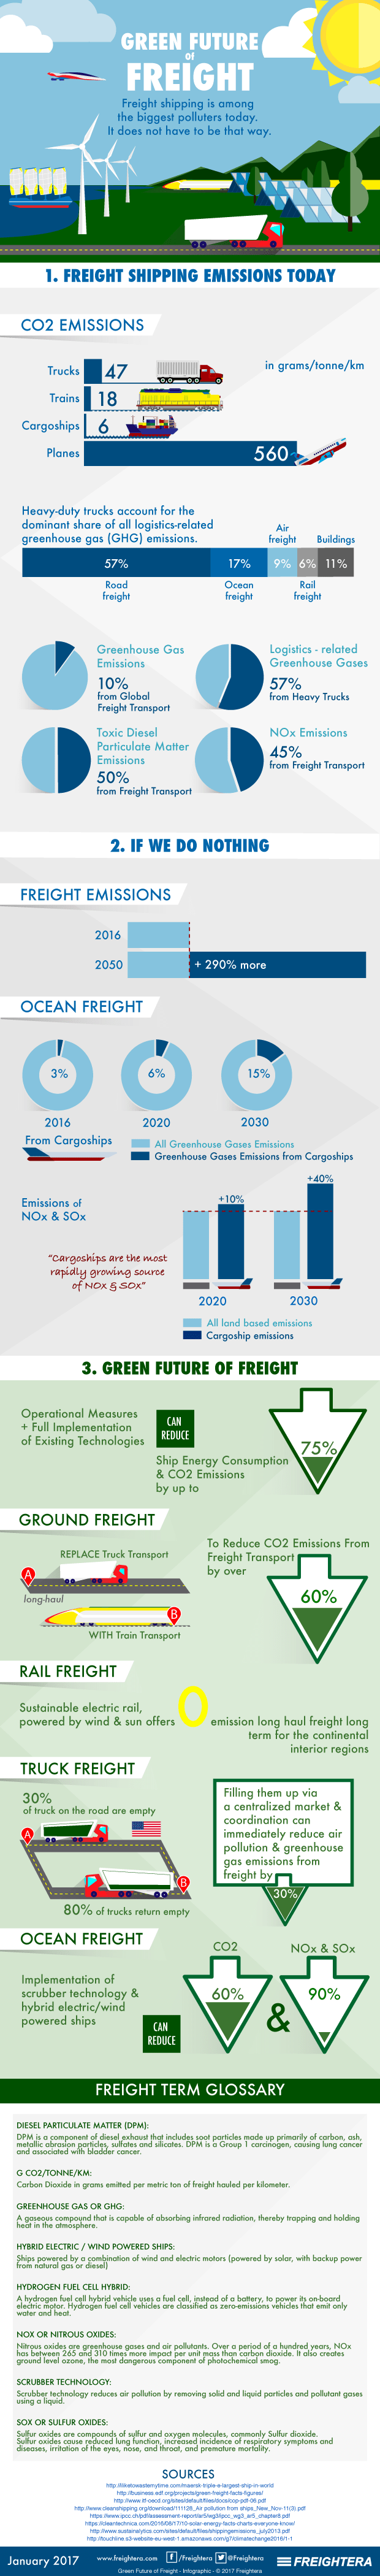 Infographic on The Green Future of Freight